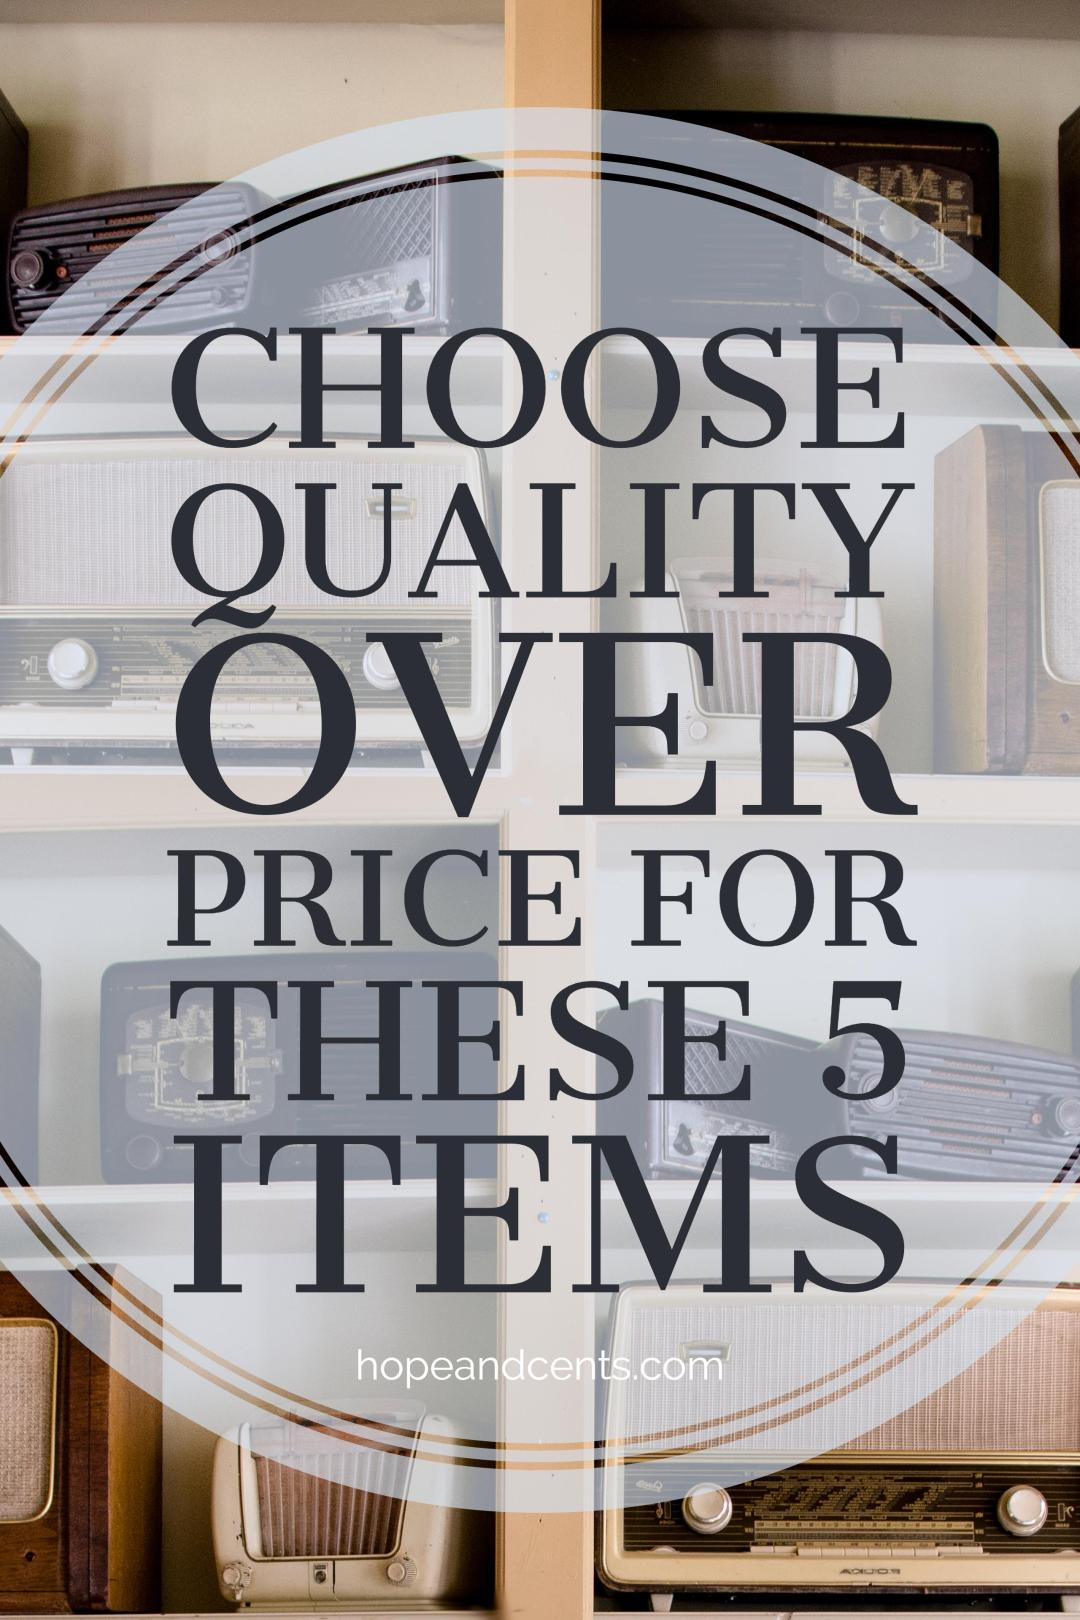 Being frugal doesn't always mean buying the cheapest item. Learn to prioritize value and quality over price for these five items.